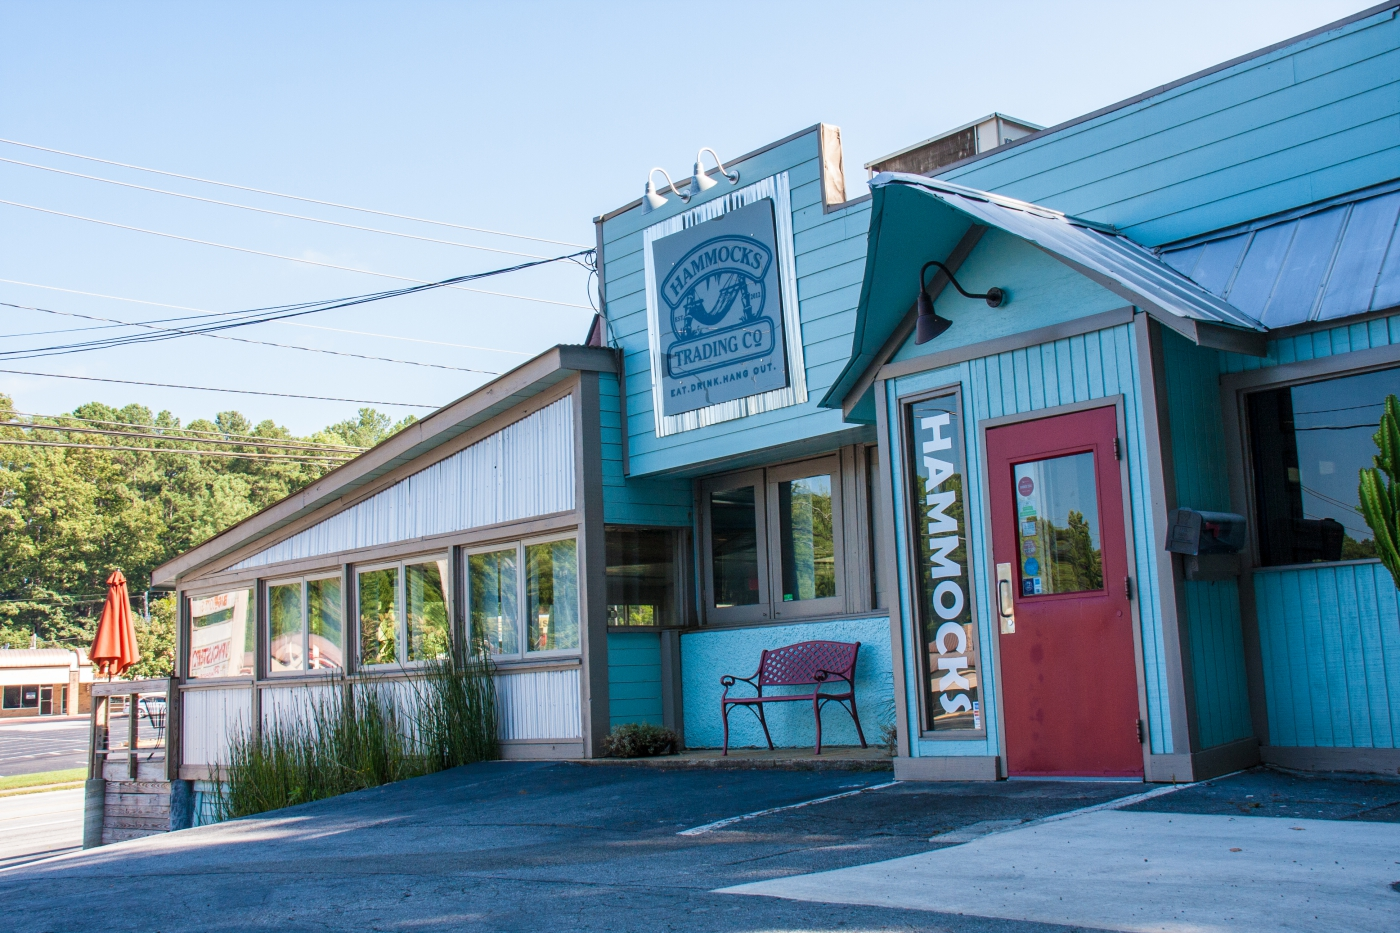 Hammock's Trading Co. Seafood Restaurant is a must visit for a great meal!